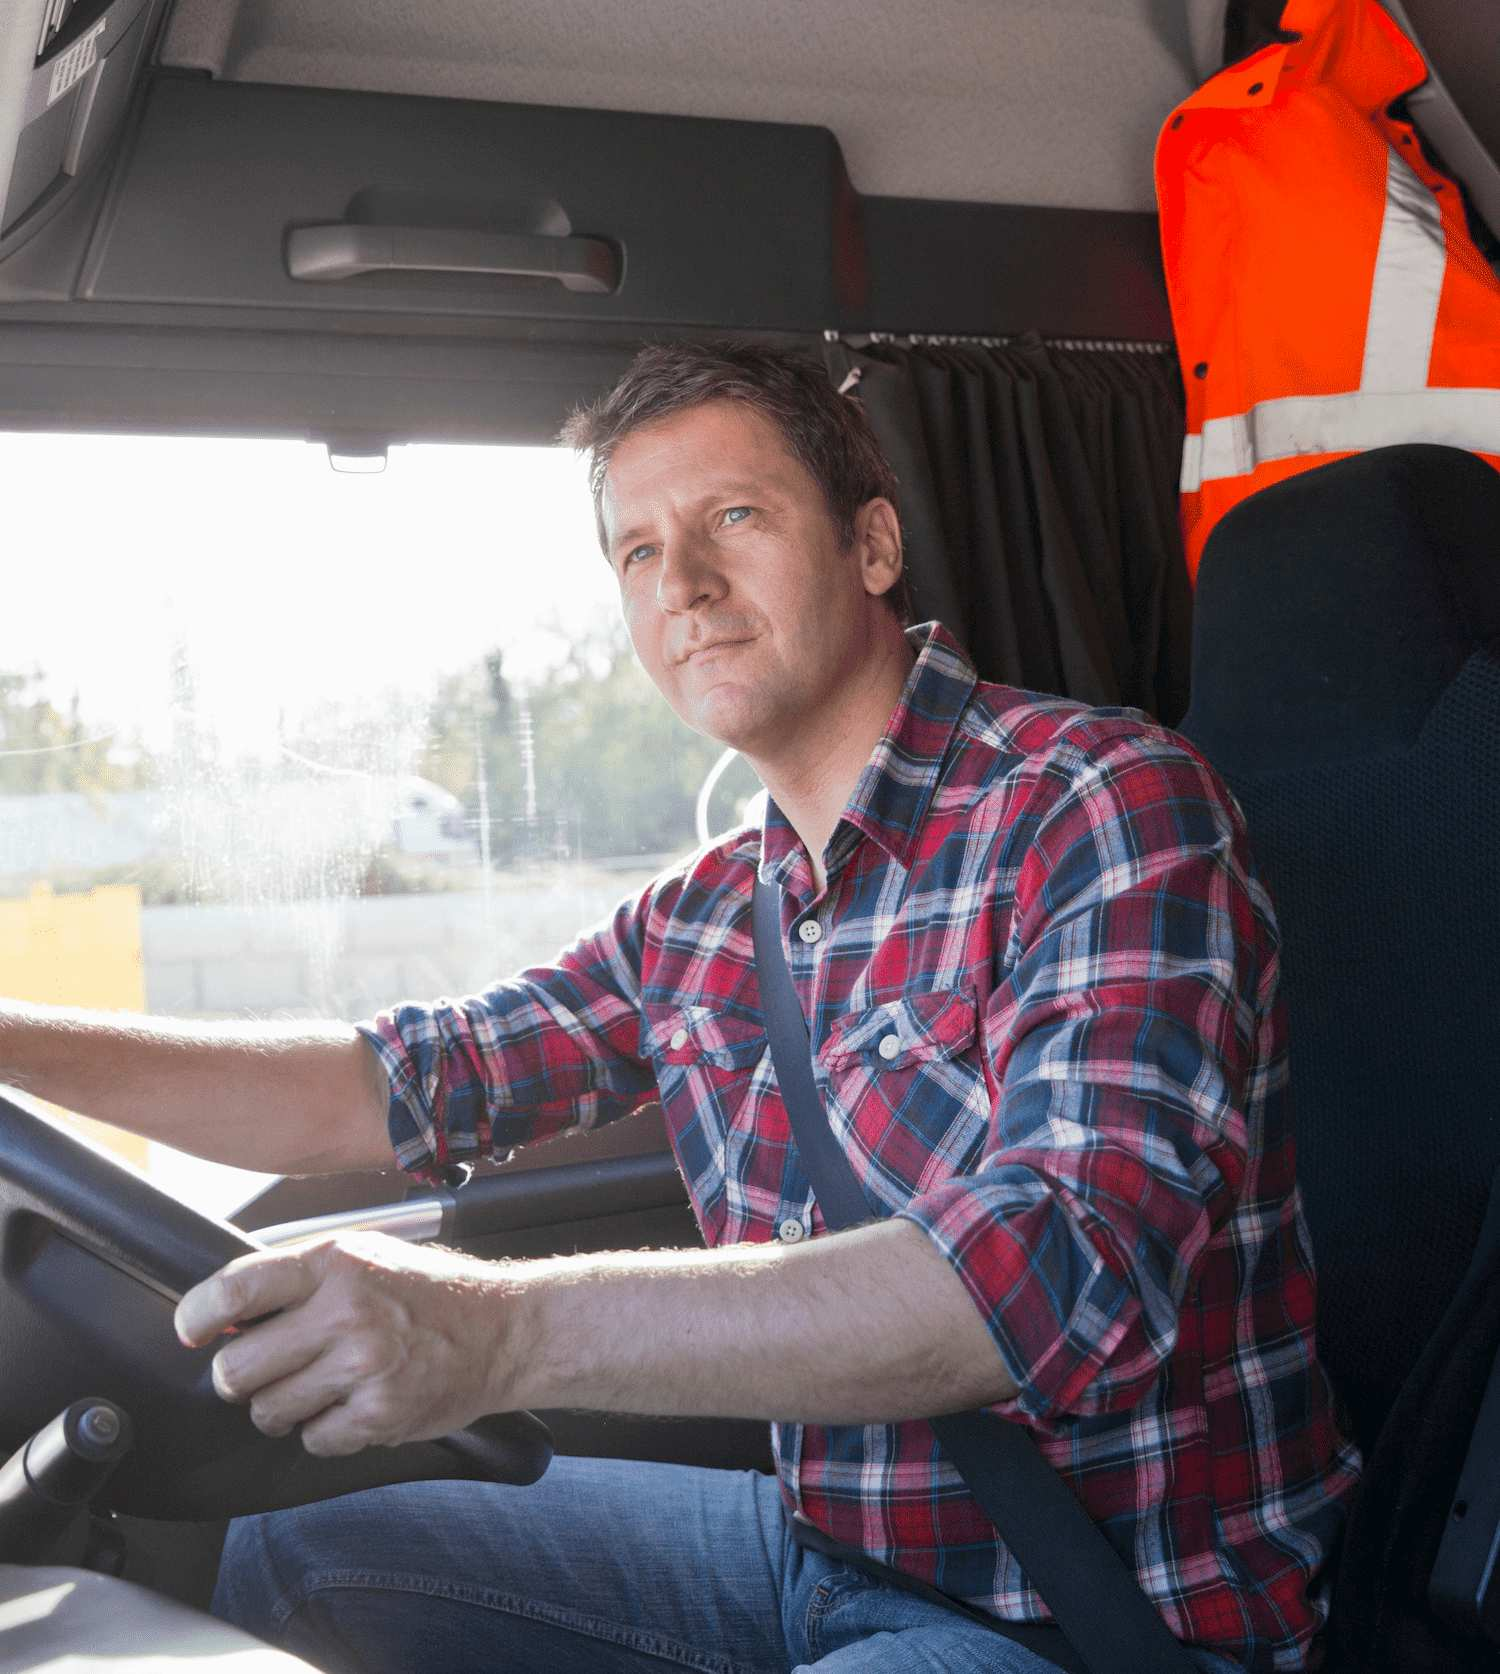 who needs driver cpc training